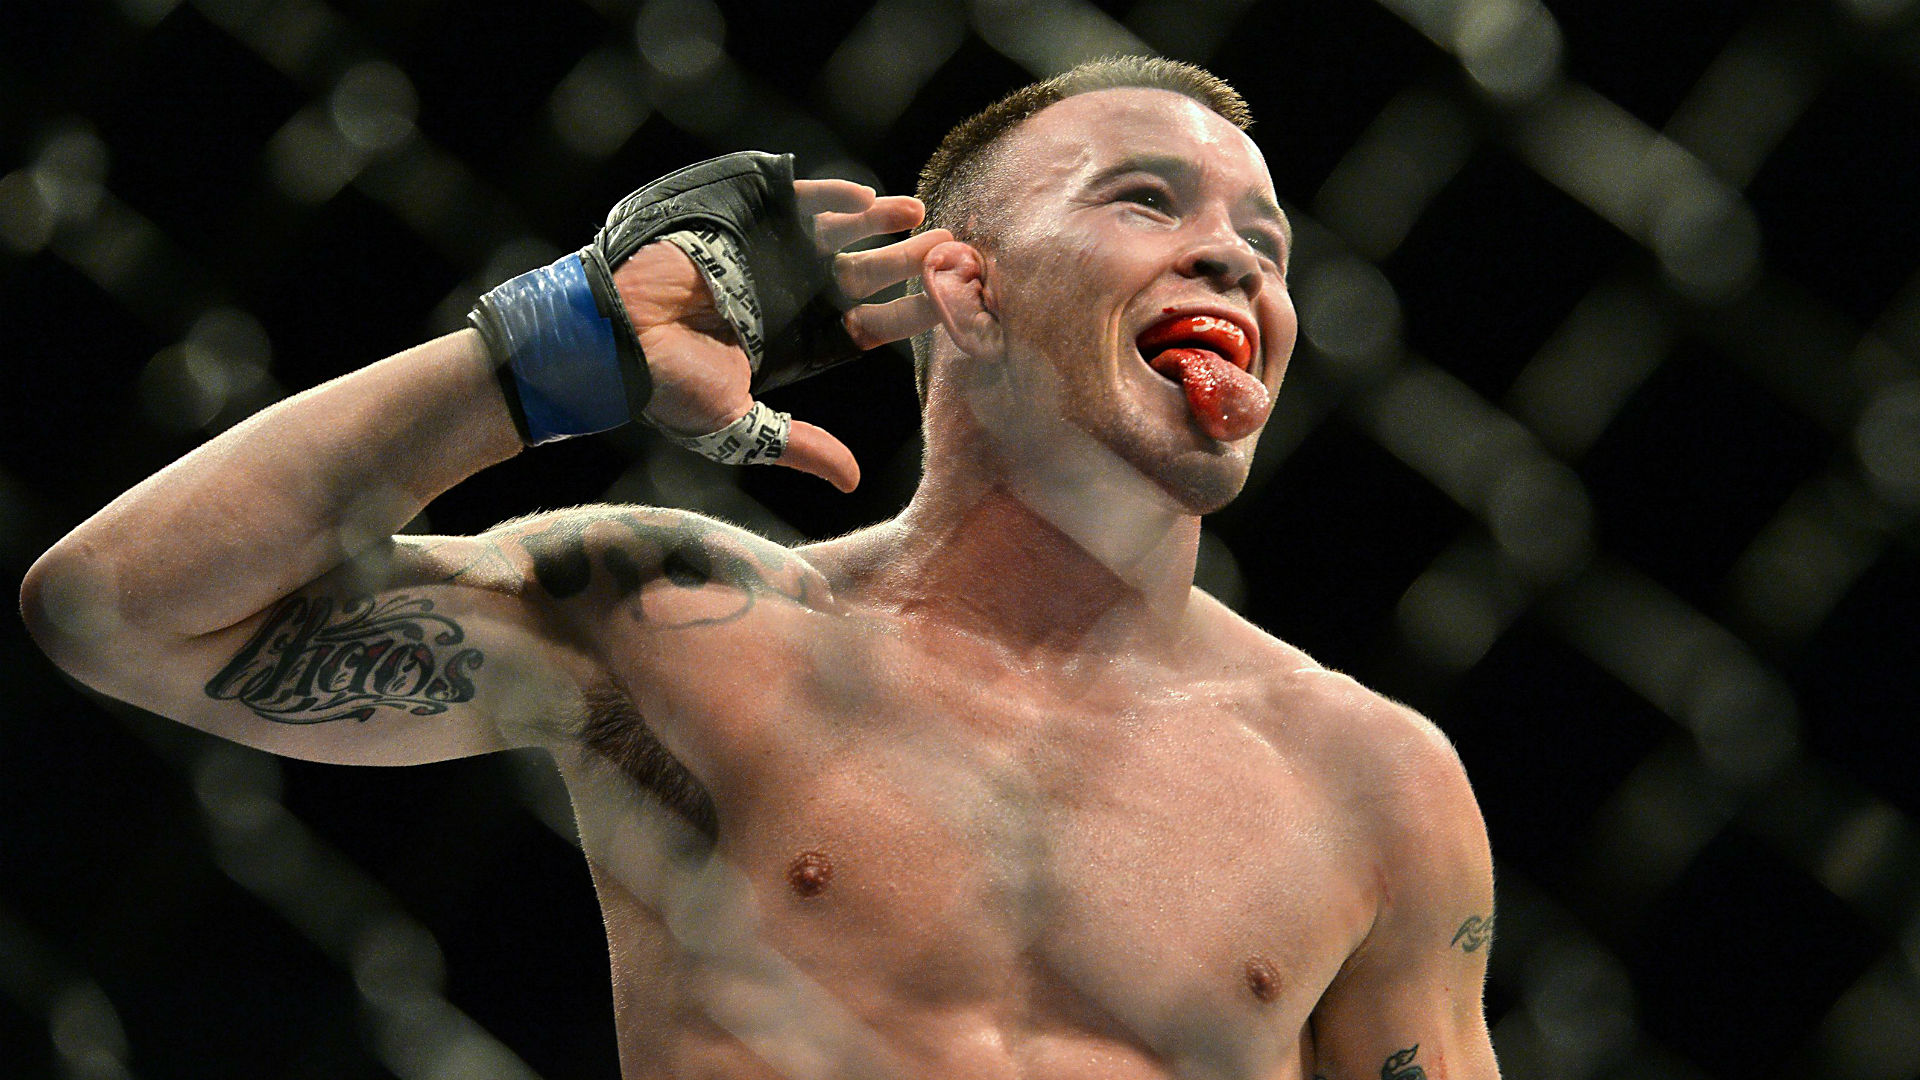 Colby Covington S Xenophobia And Bigotry Are Not Ok Even If You Think It S An Act Sports Grind Entertainment